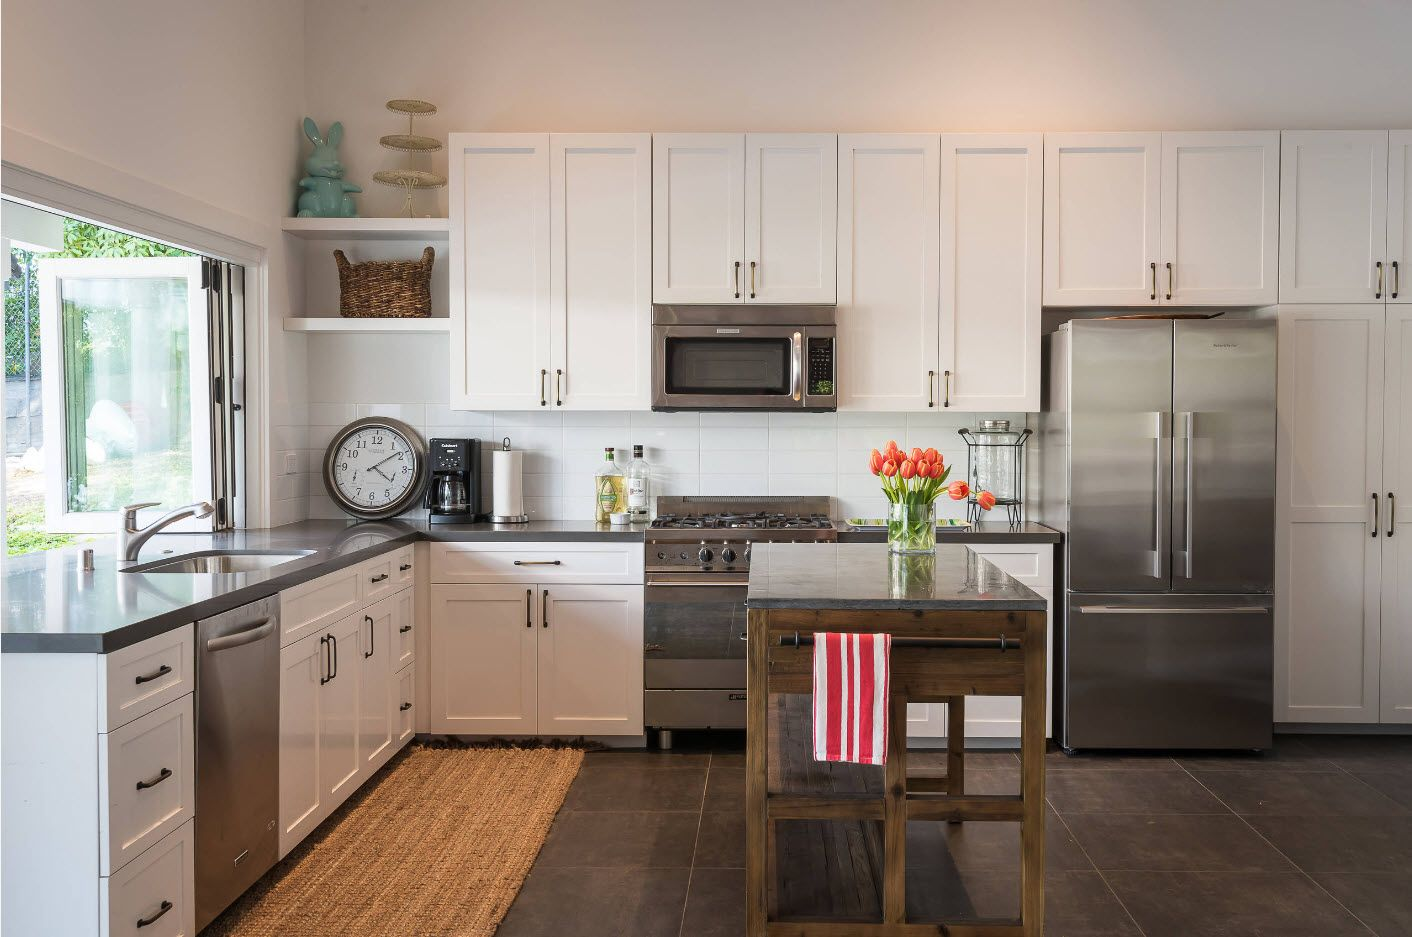 Classic in every sense kitchen with steel fridge